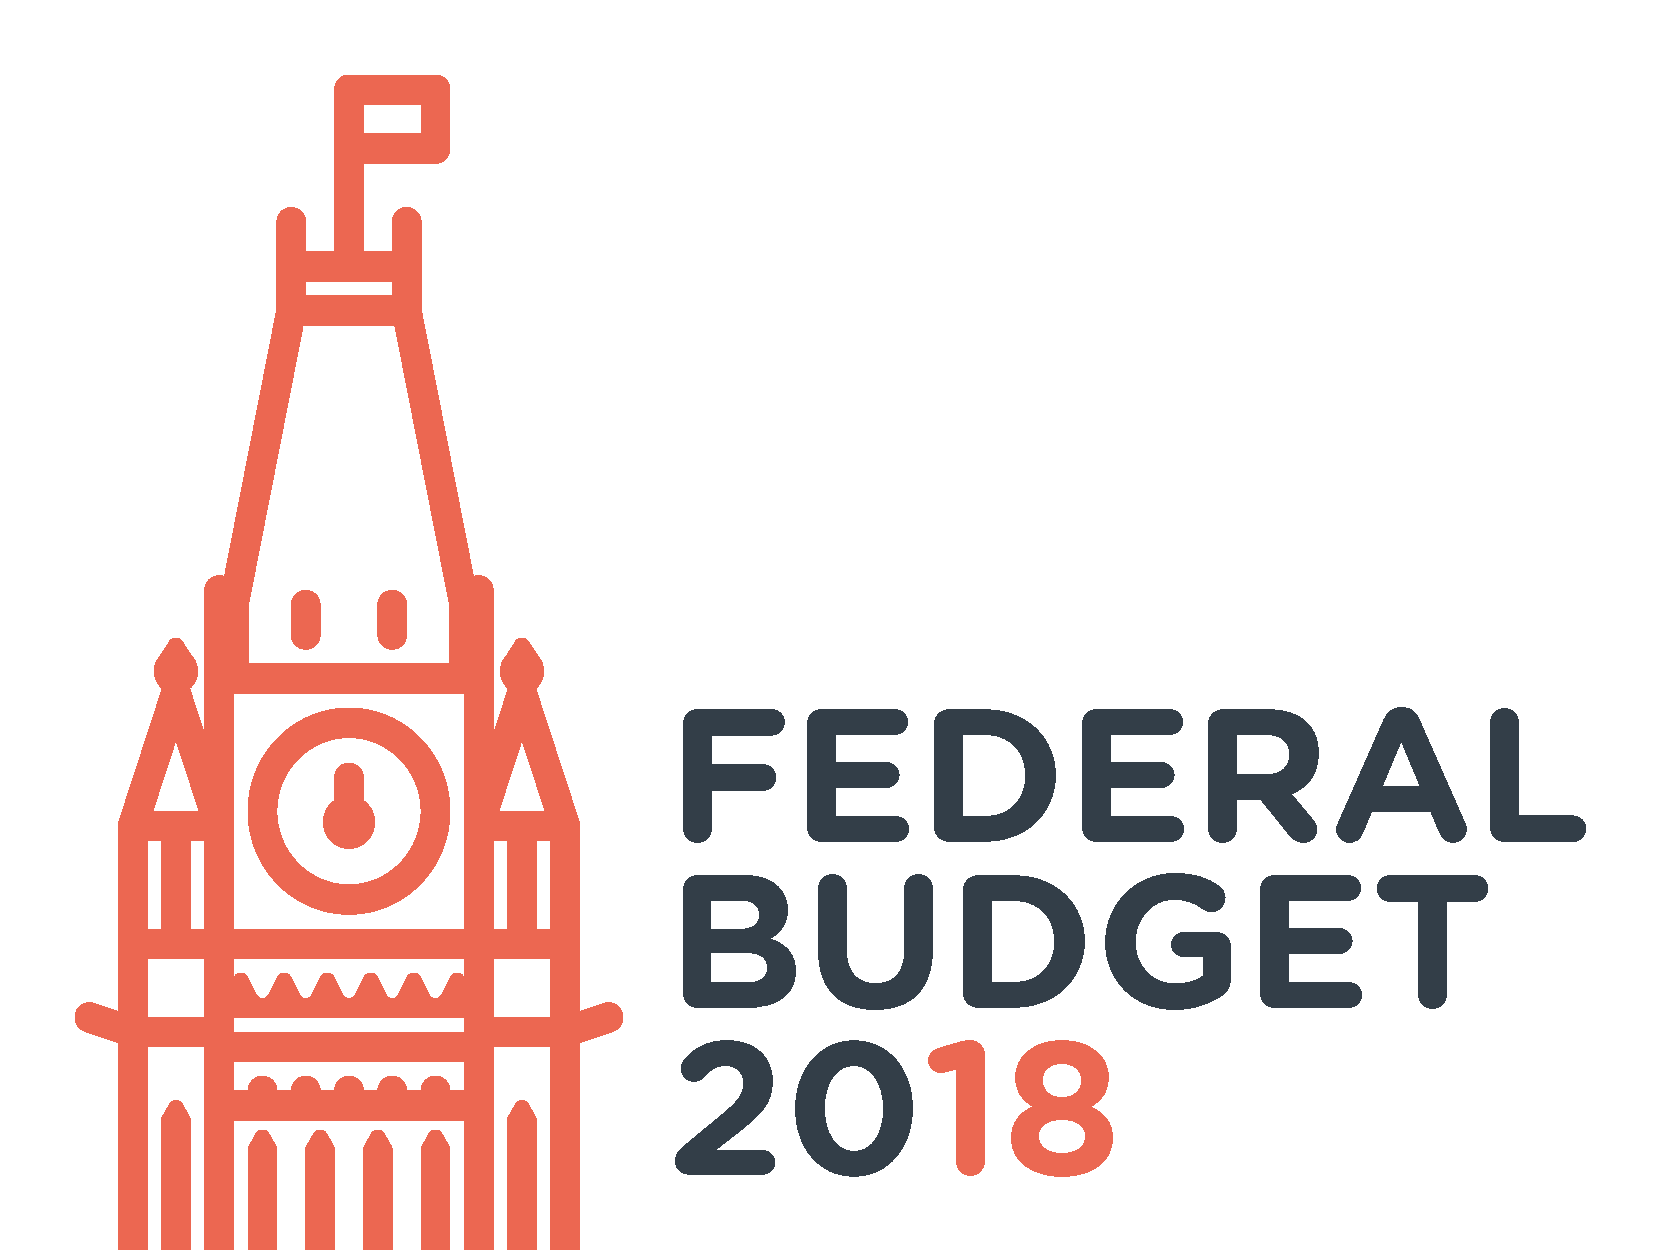 budget-2018-EN-featured-image-top.png